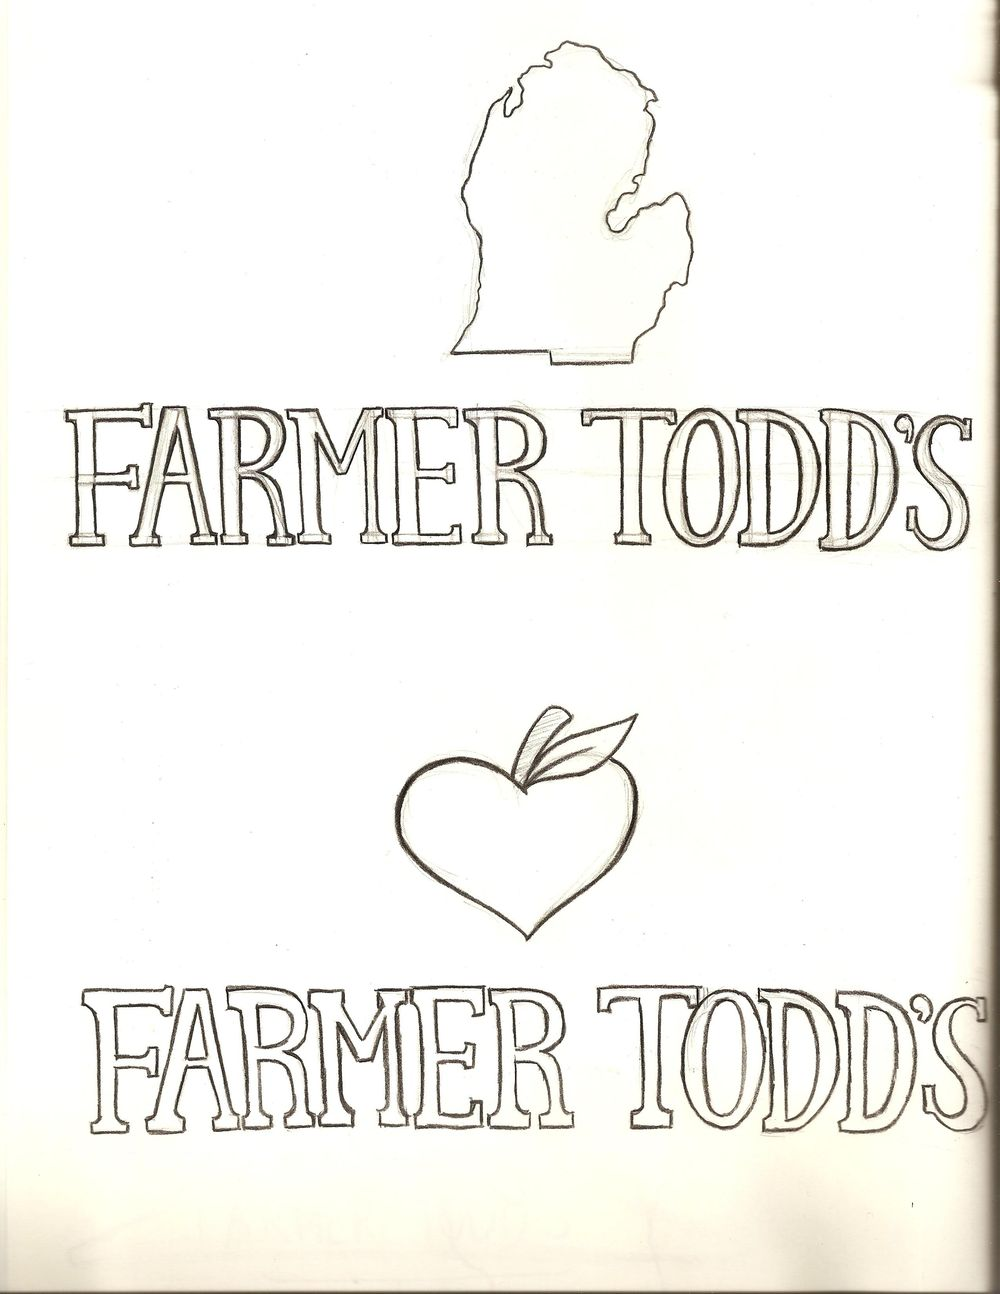 Farmer Todd's Pickled Hot Peppers and Mama Shellie's Zucchini Bread - image 15 - student project